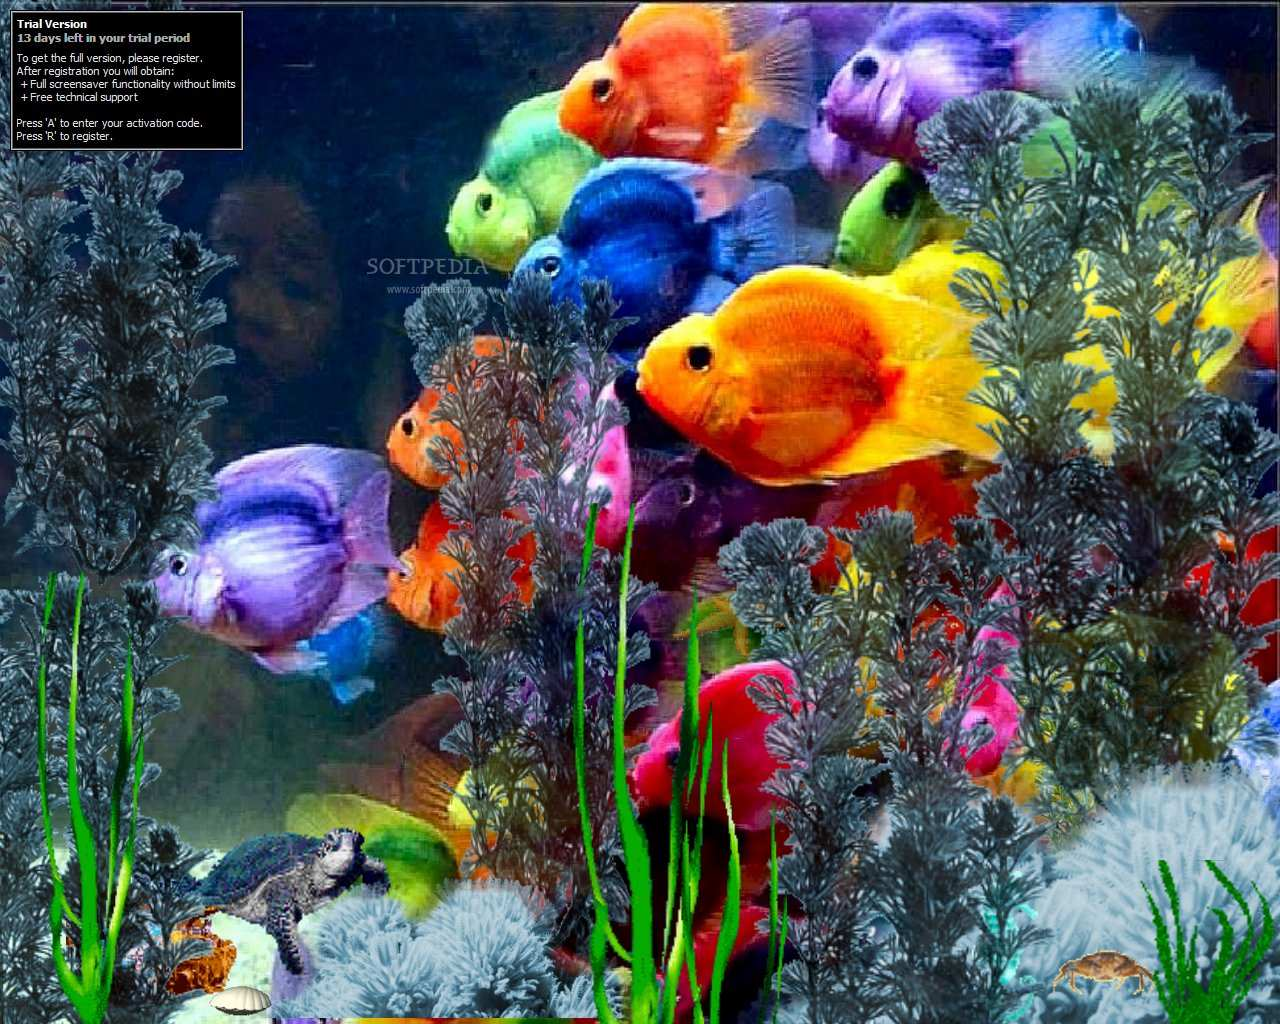 Freshwater aquarium fish ebook free download - 61 Best Images About Beautiful Things I Admire On Pinterest Mallard Tropical Fish And Colorful Fish